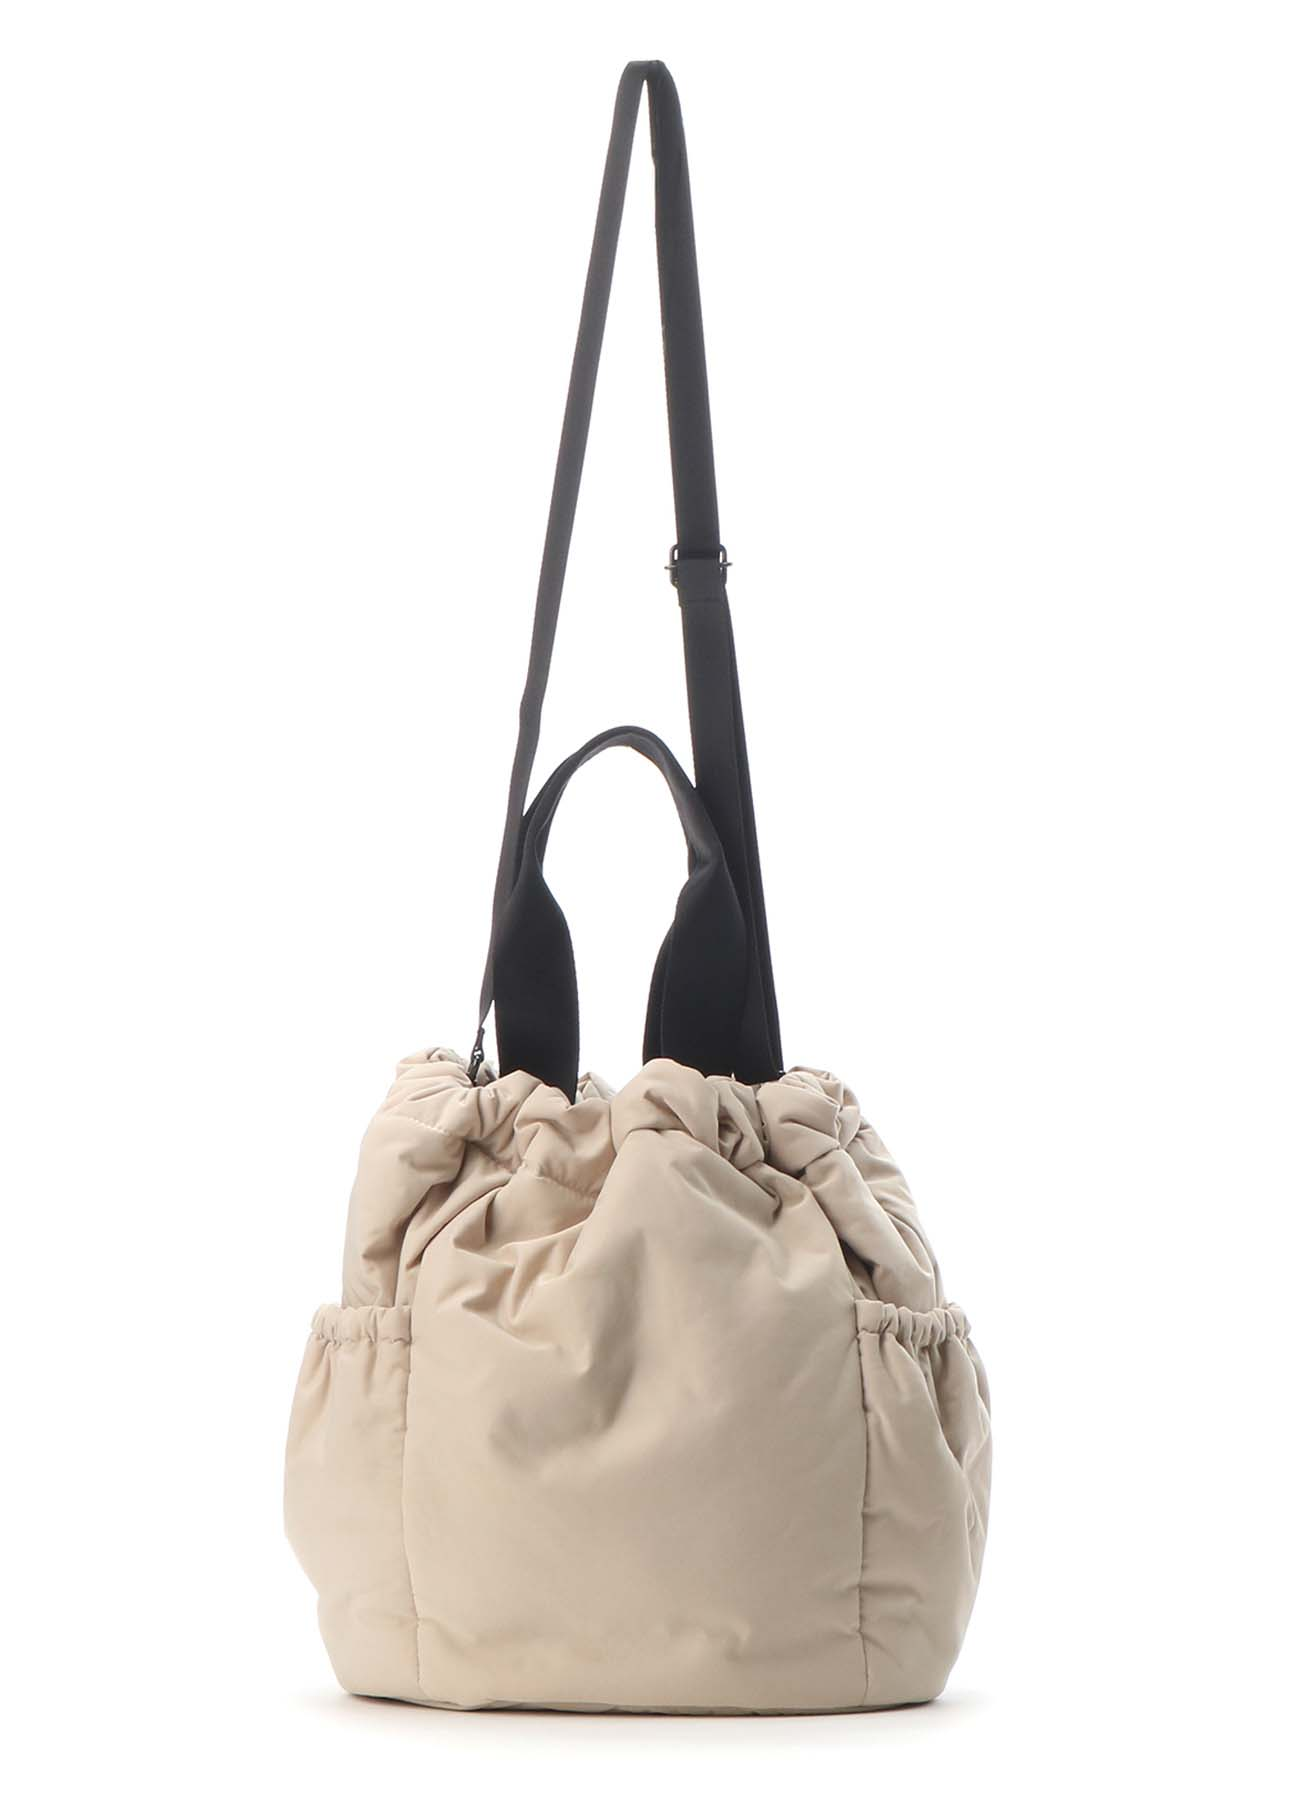 PY MEMORY WEATHER INSULATED PURSE STYLE BAG